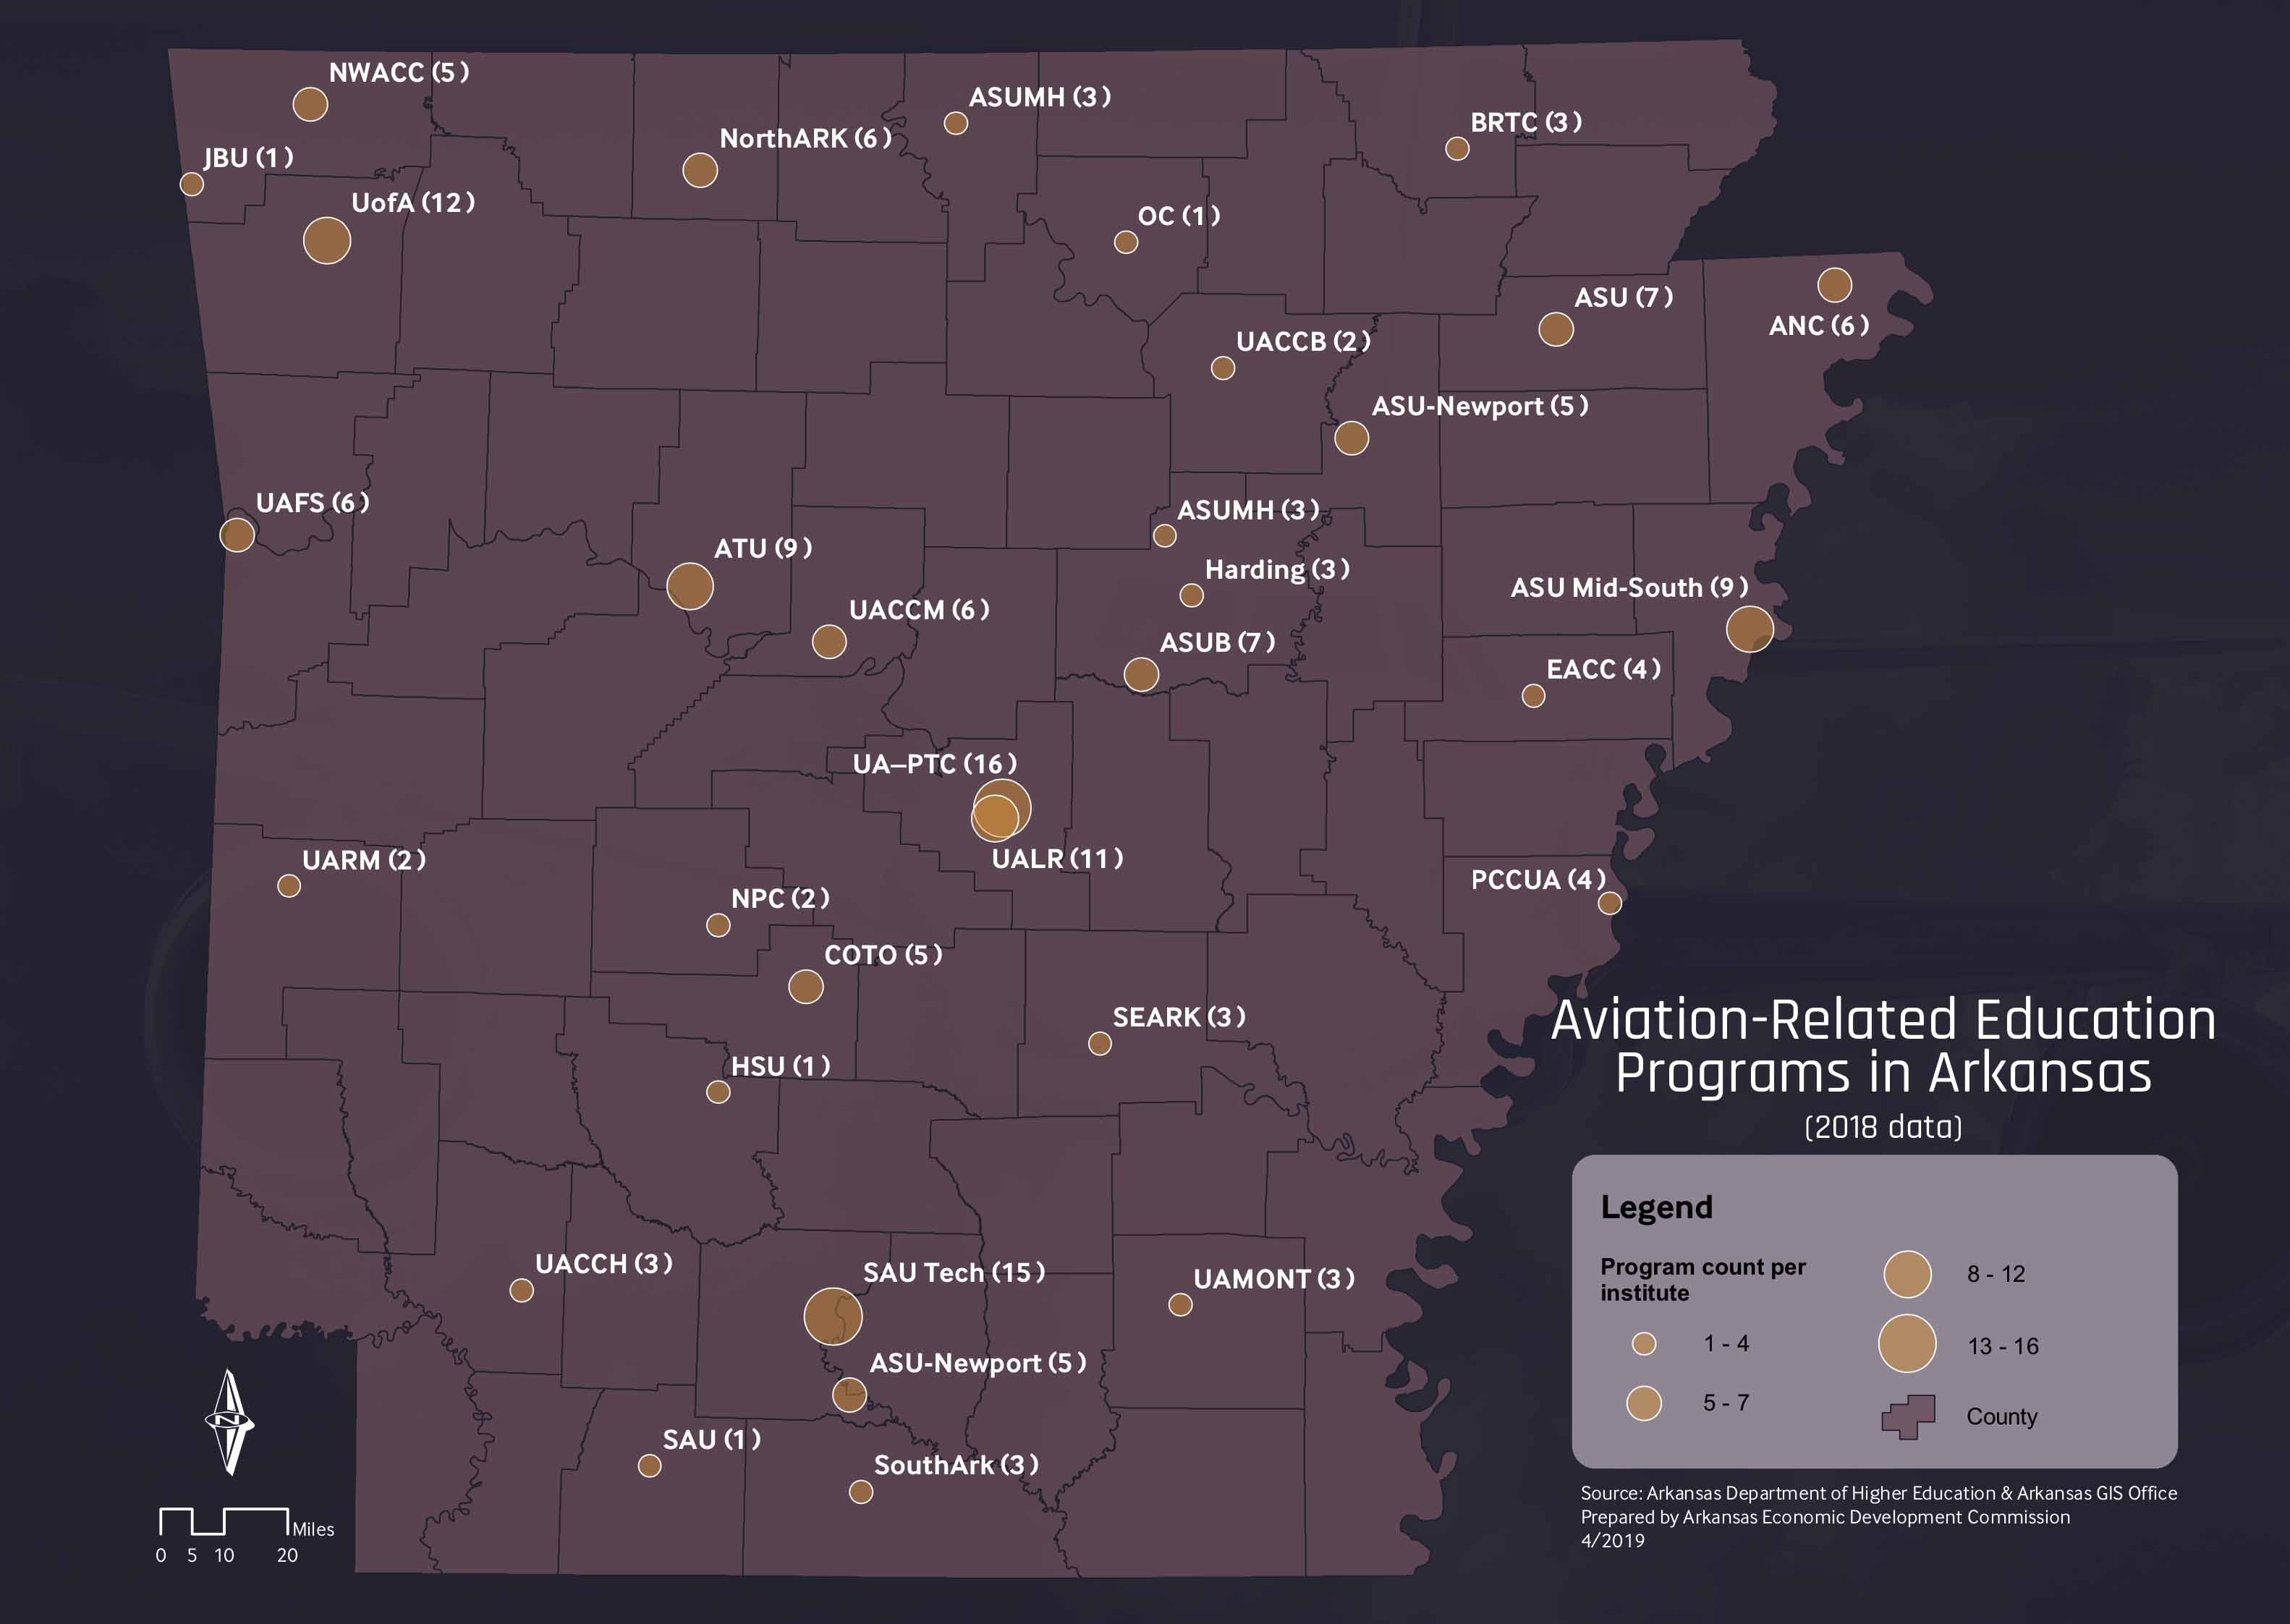 aviation related education programs in AR